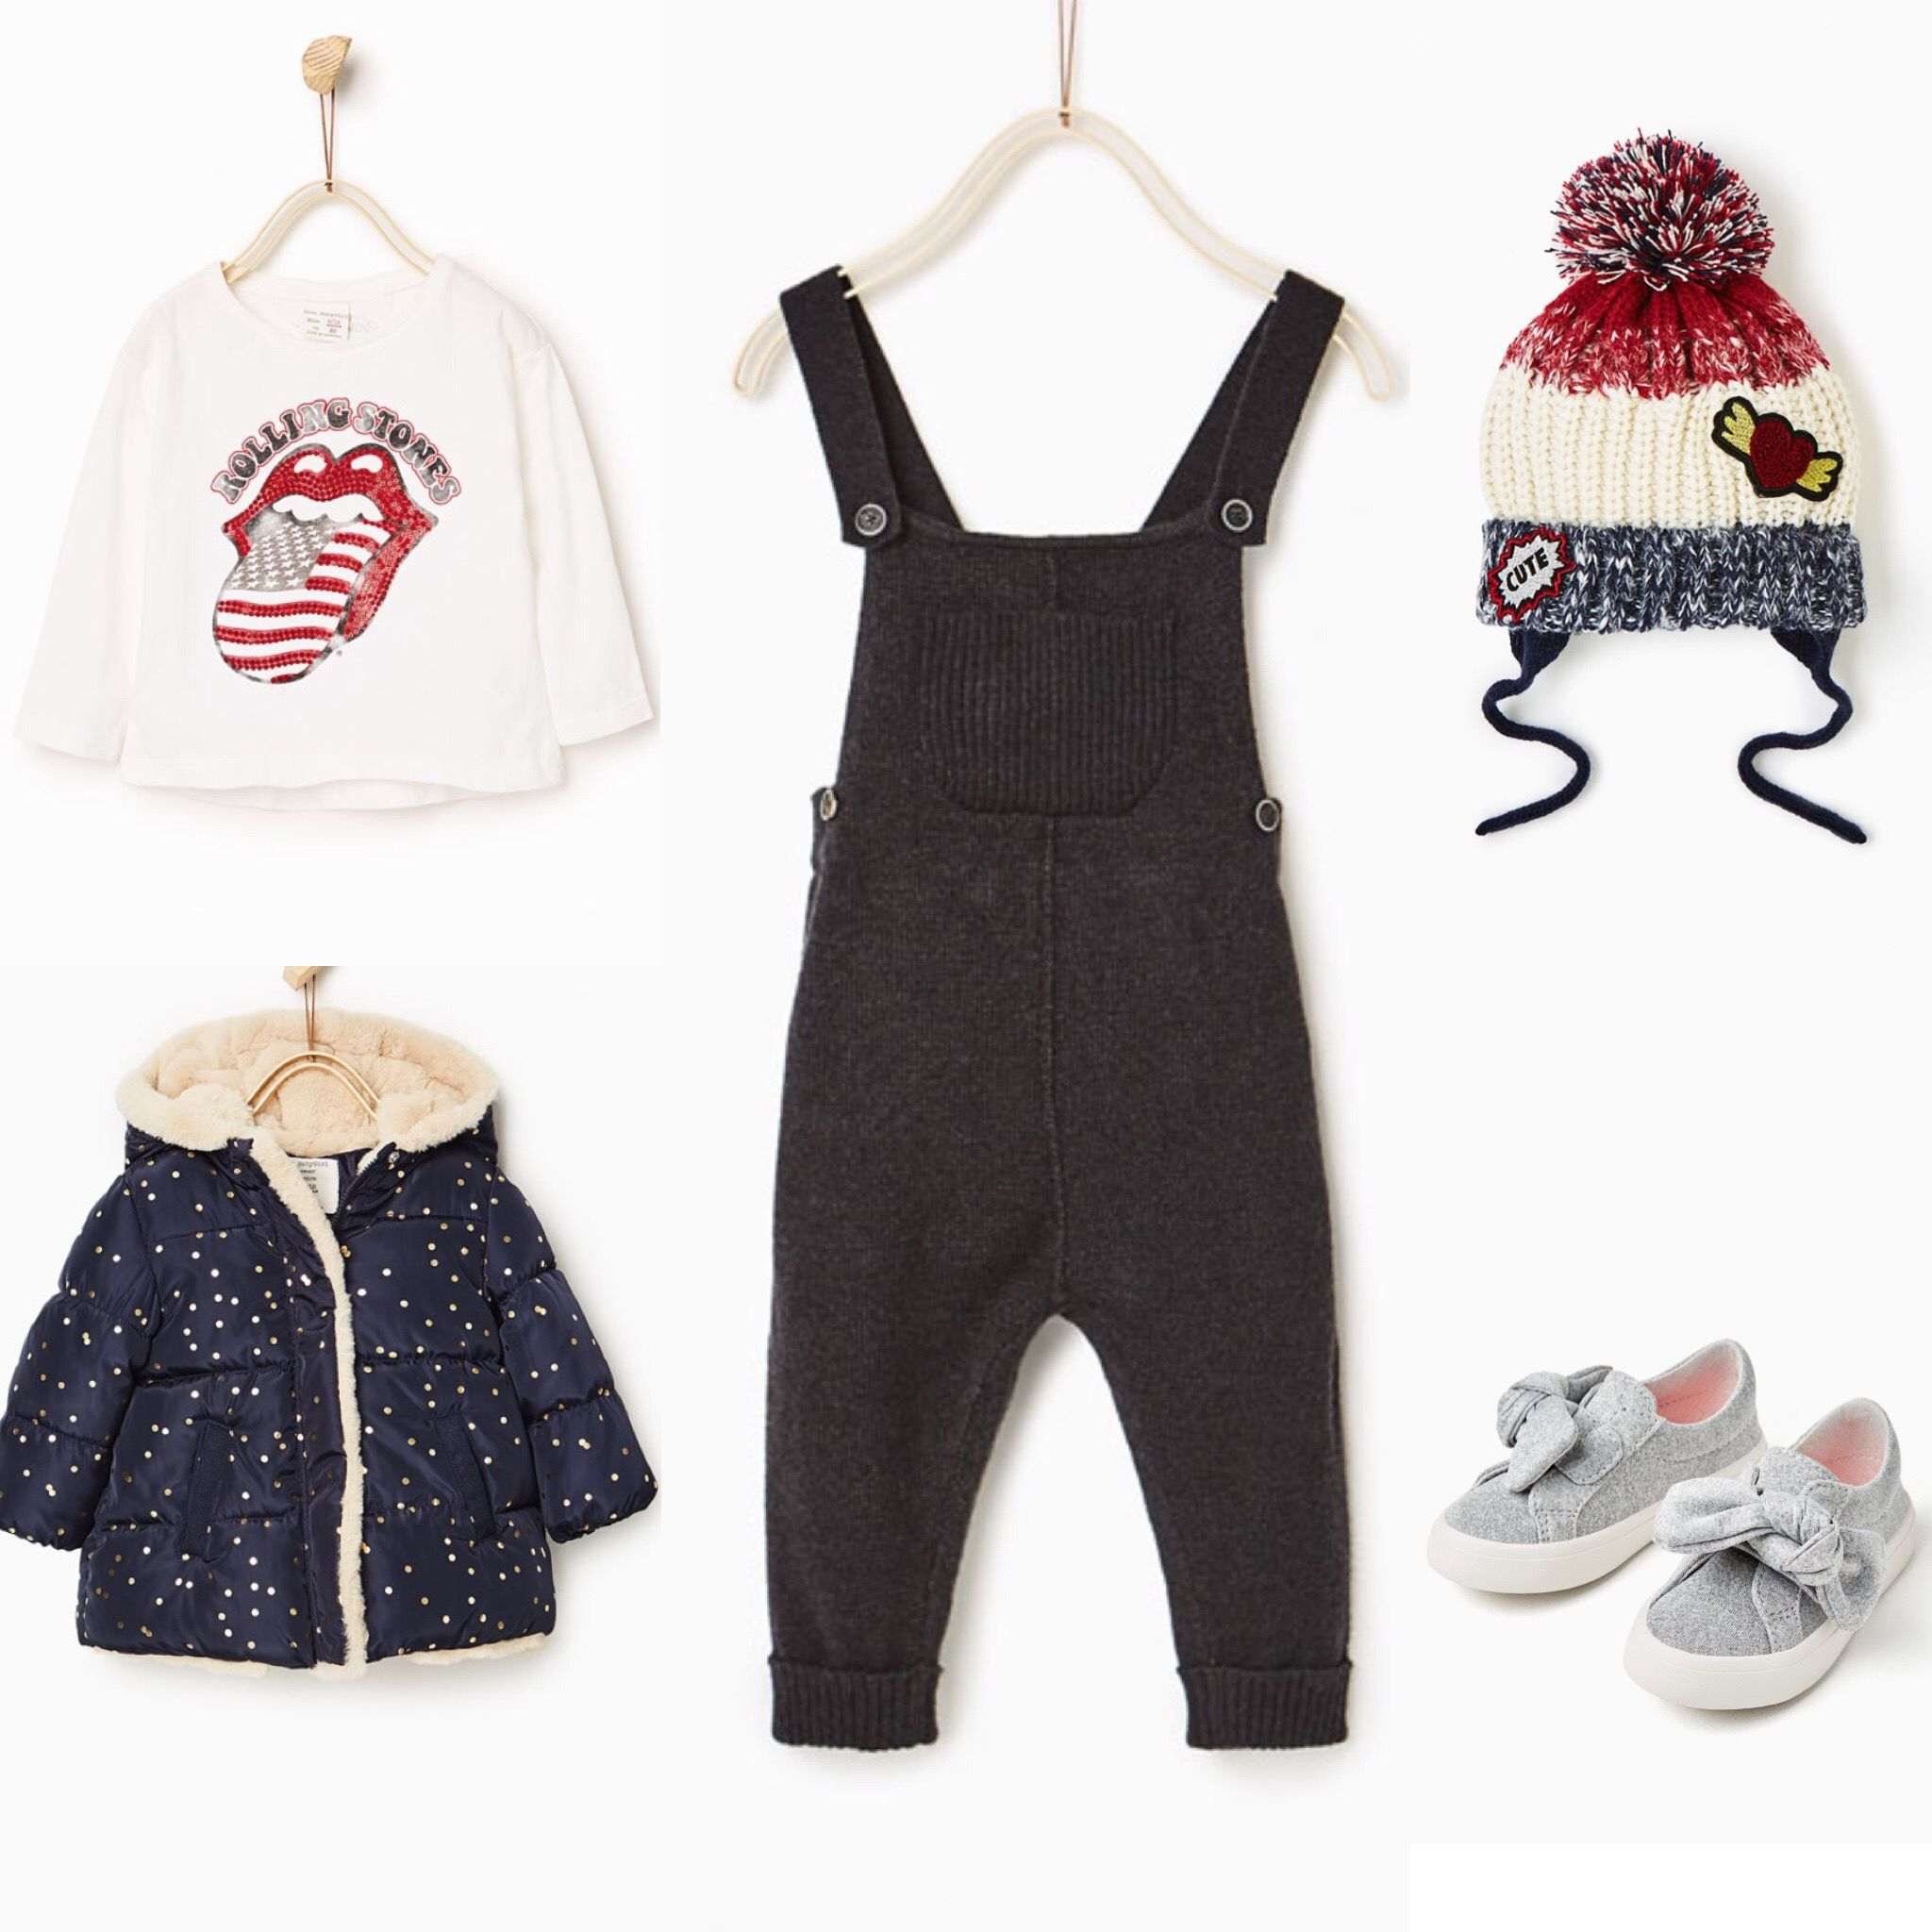 Baby girl outfit idea Zara 2016 winter collection Black dungarees